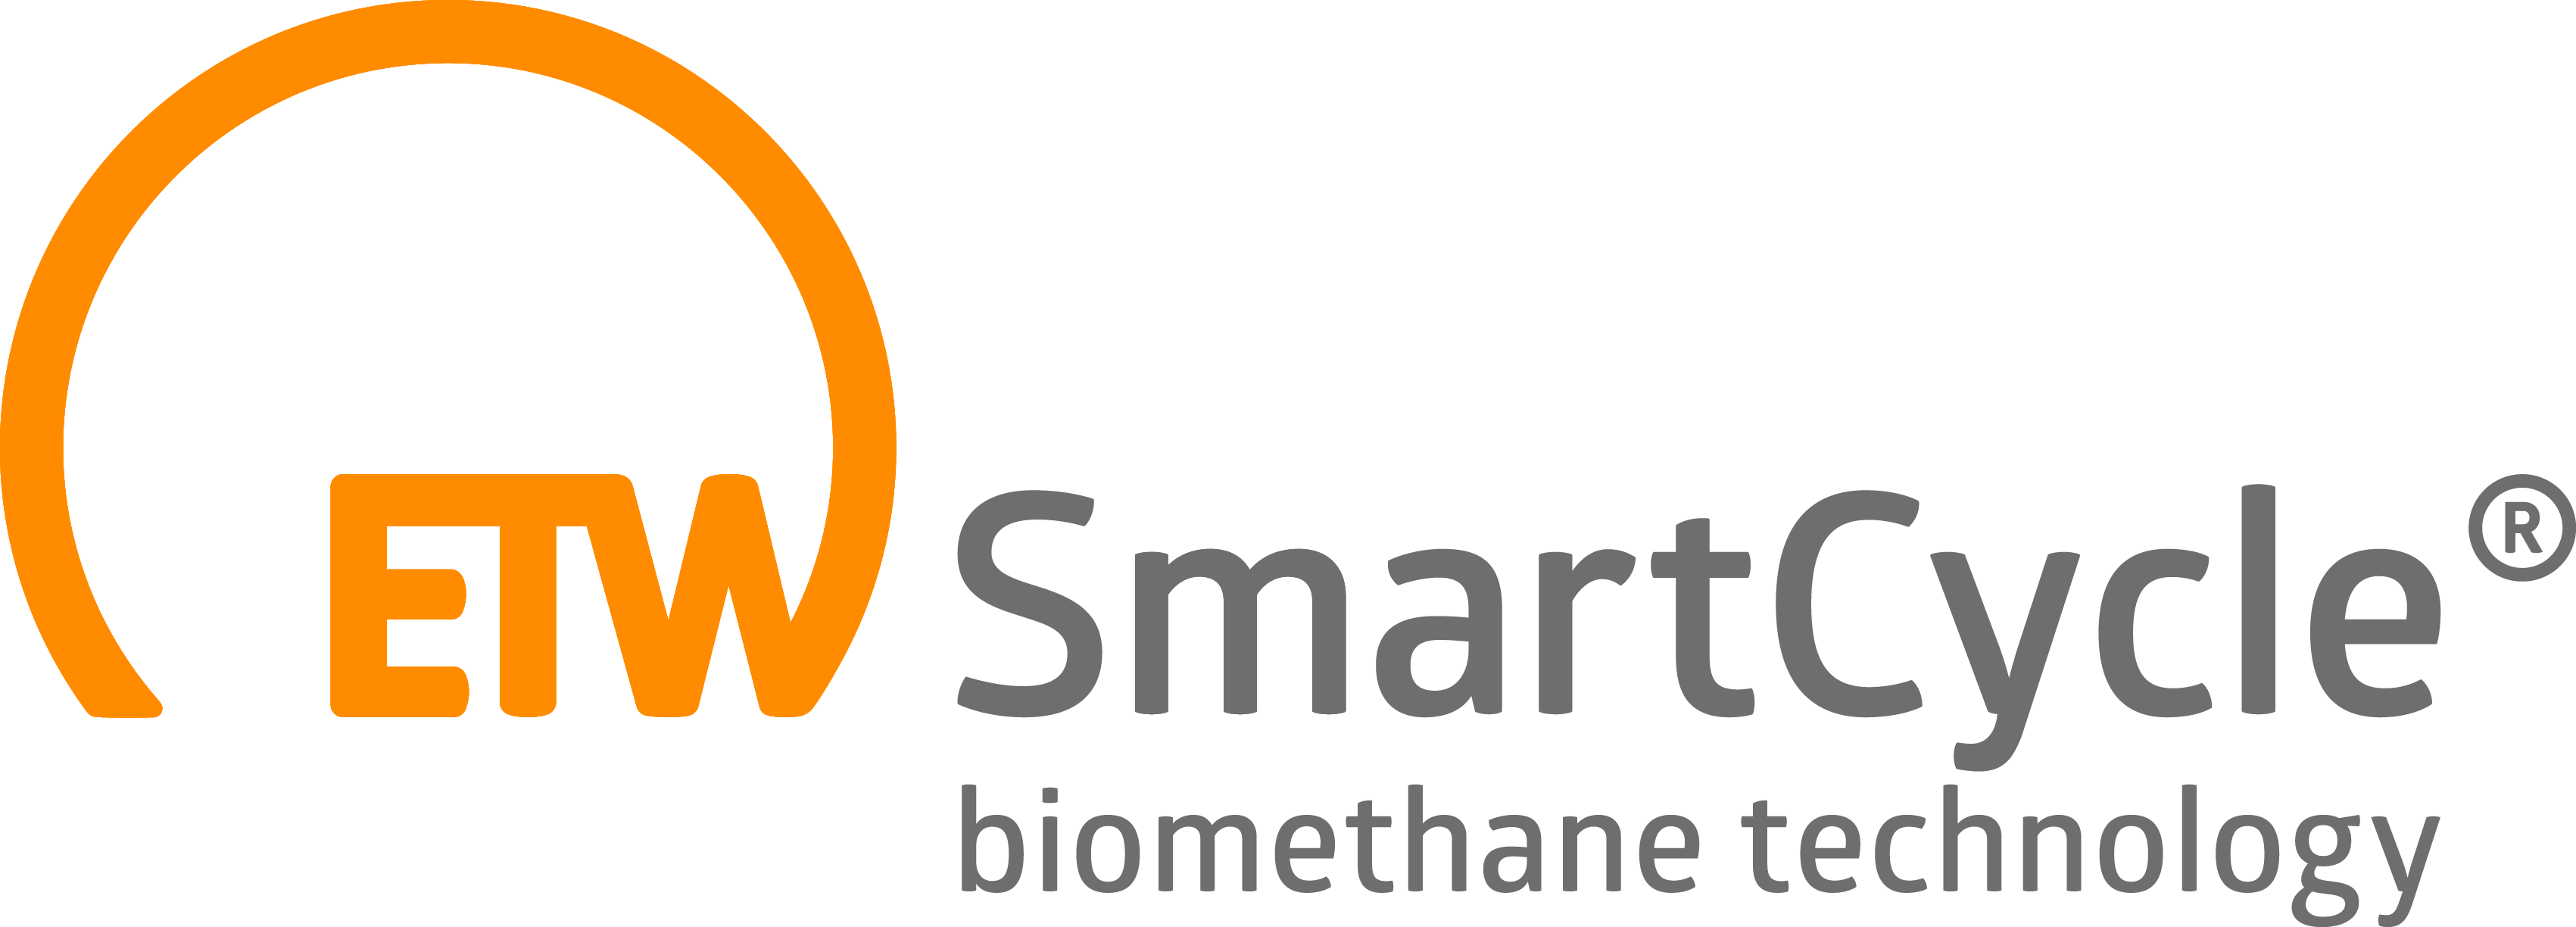 etw-smartcycle-logo-rgb-420